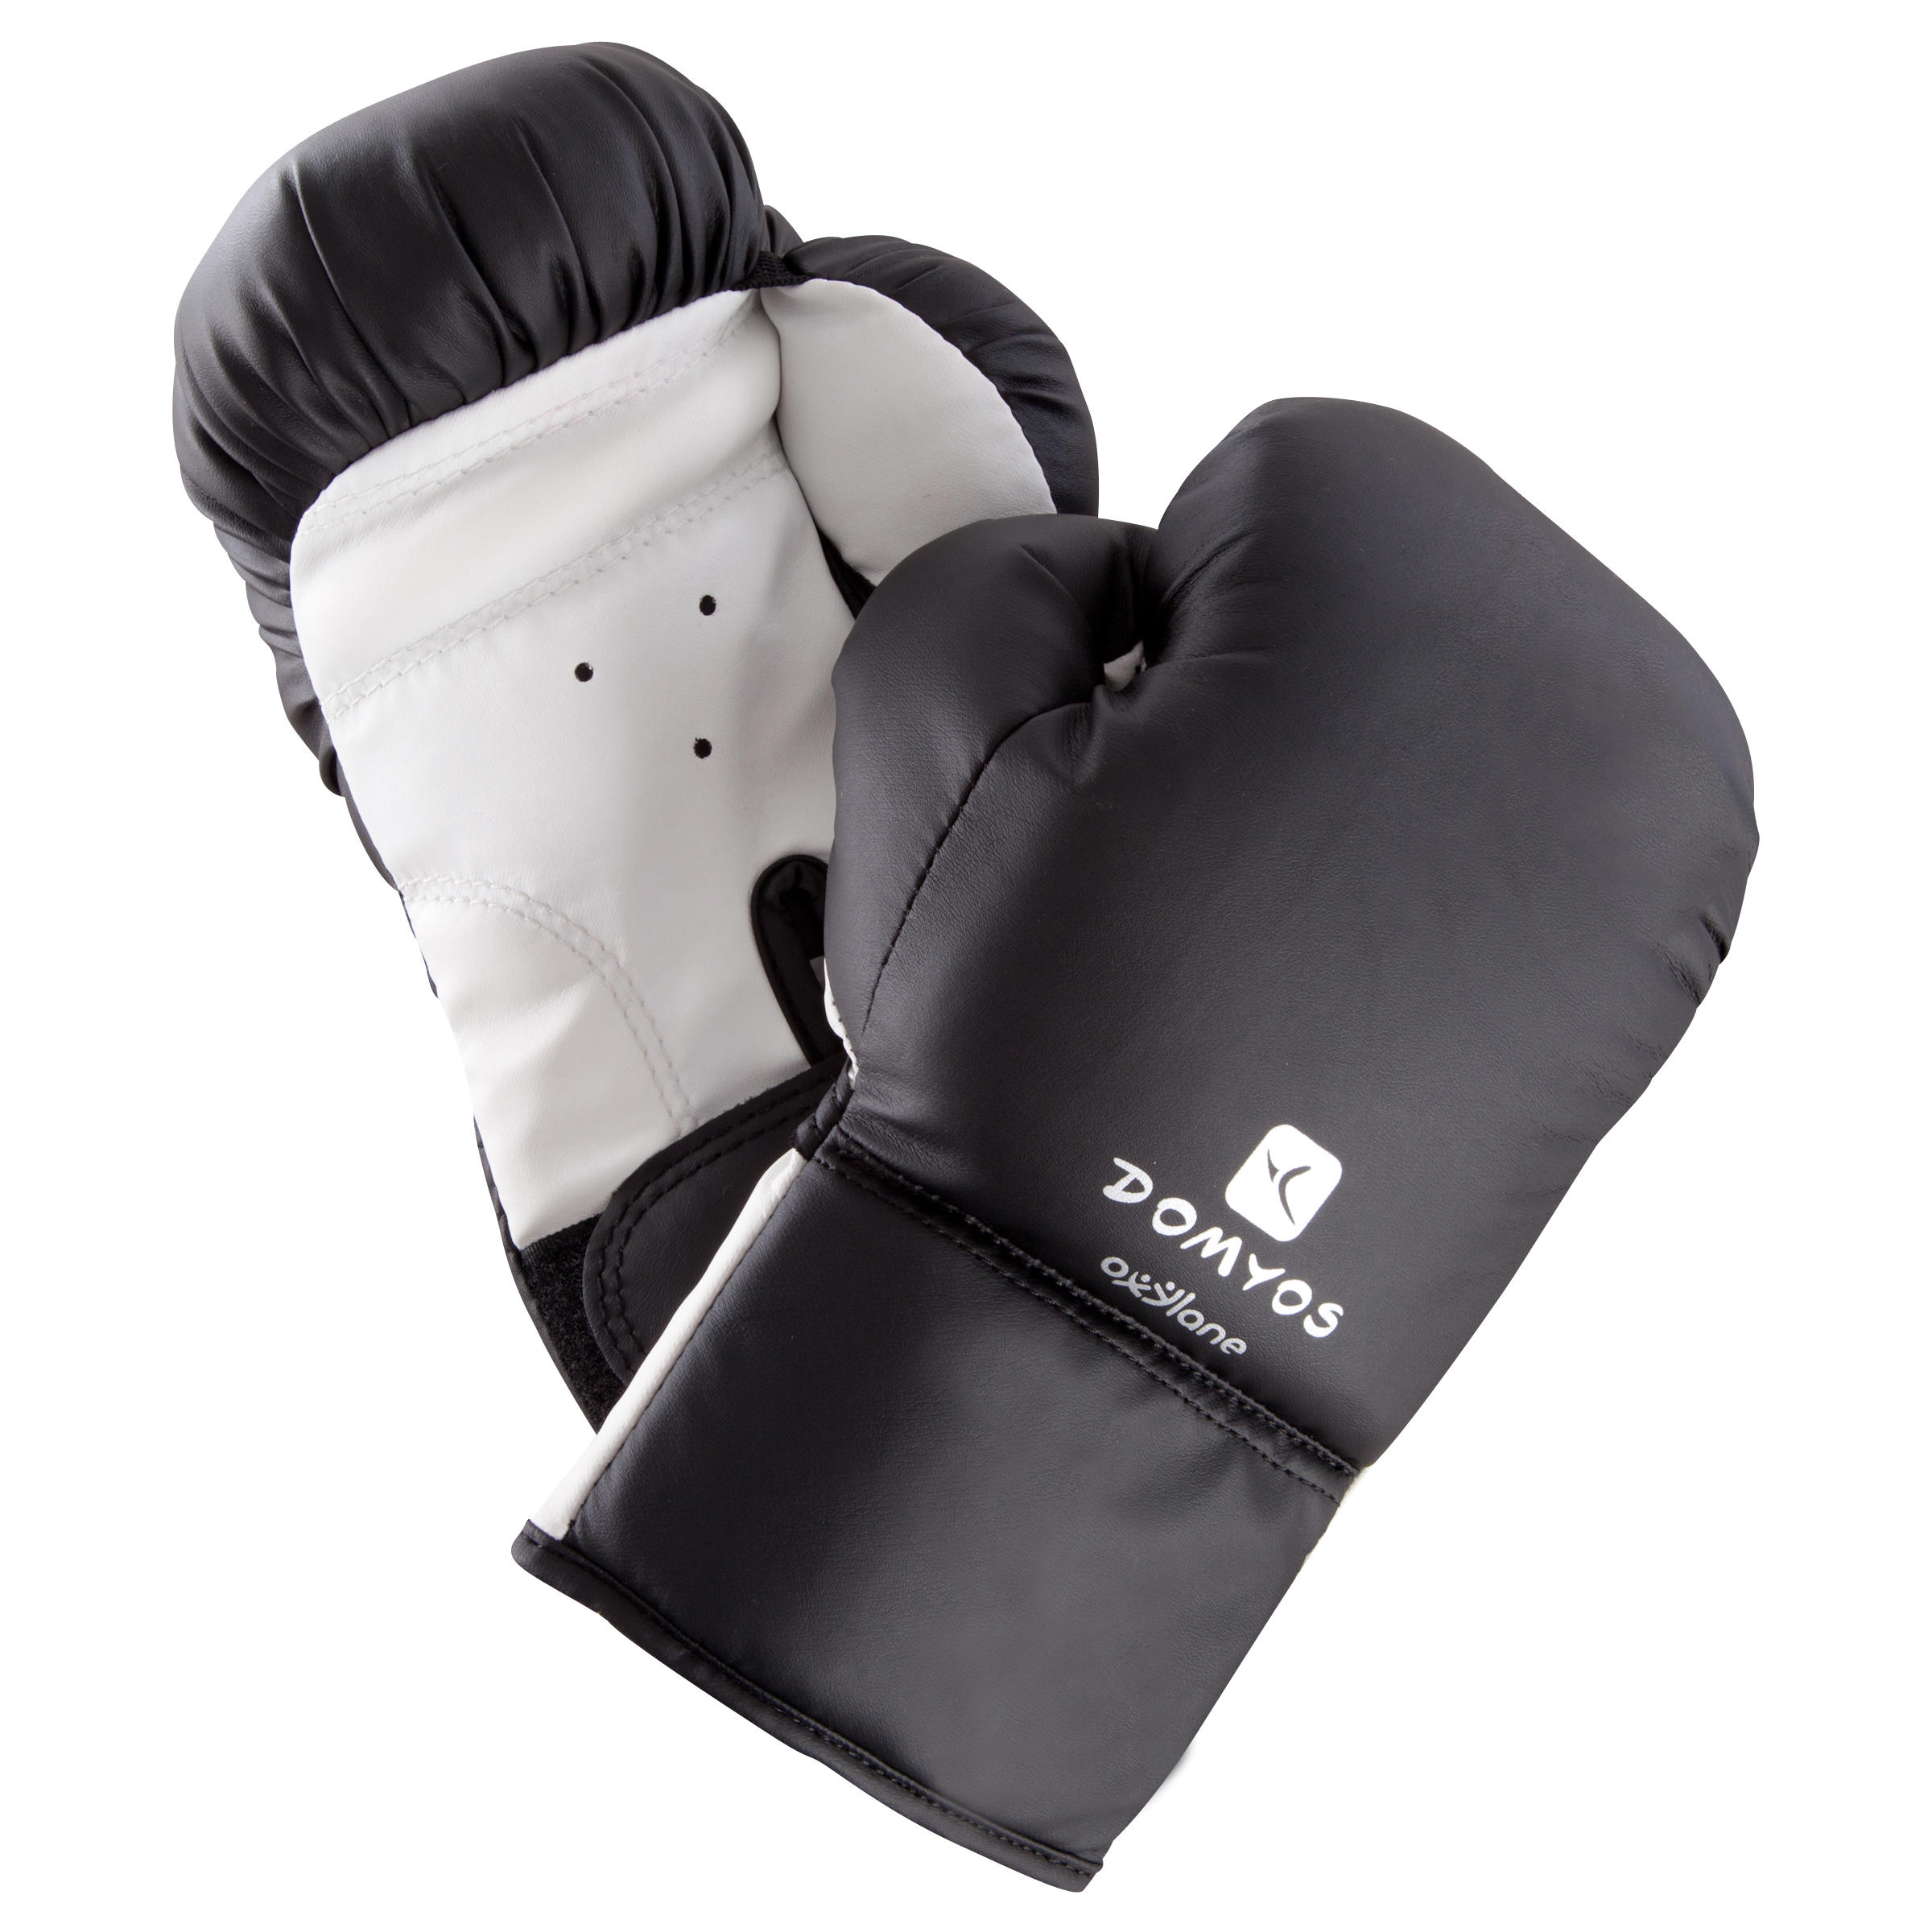 Punch Ball + Kids' Boxing Gloves